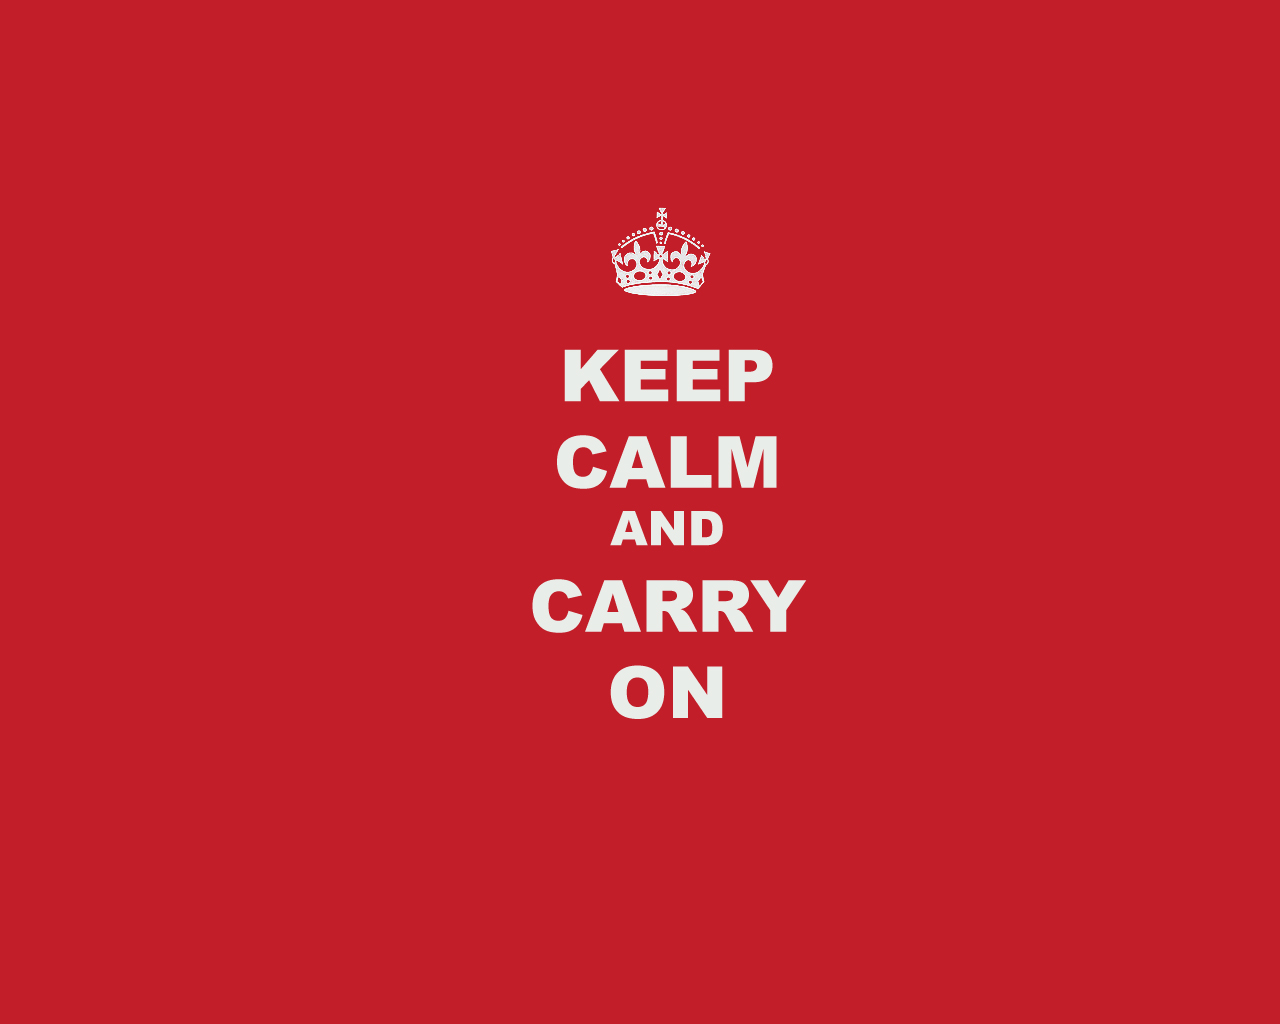 keep calm and carry on wallpapers keep calm and carry on stock photos